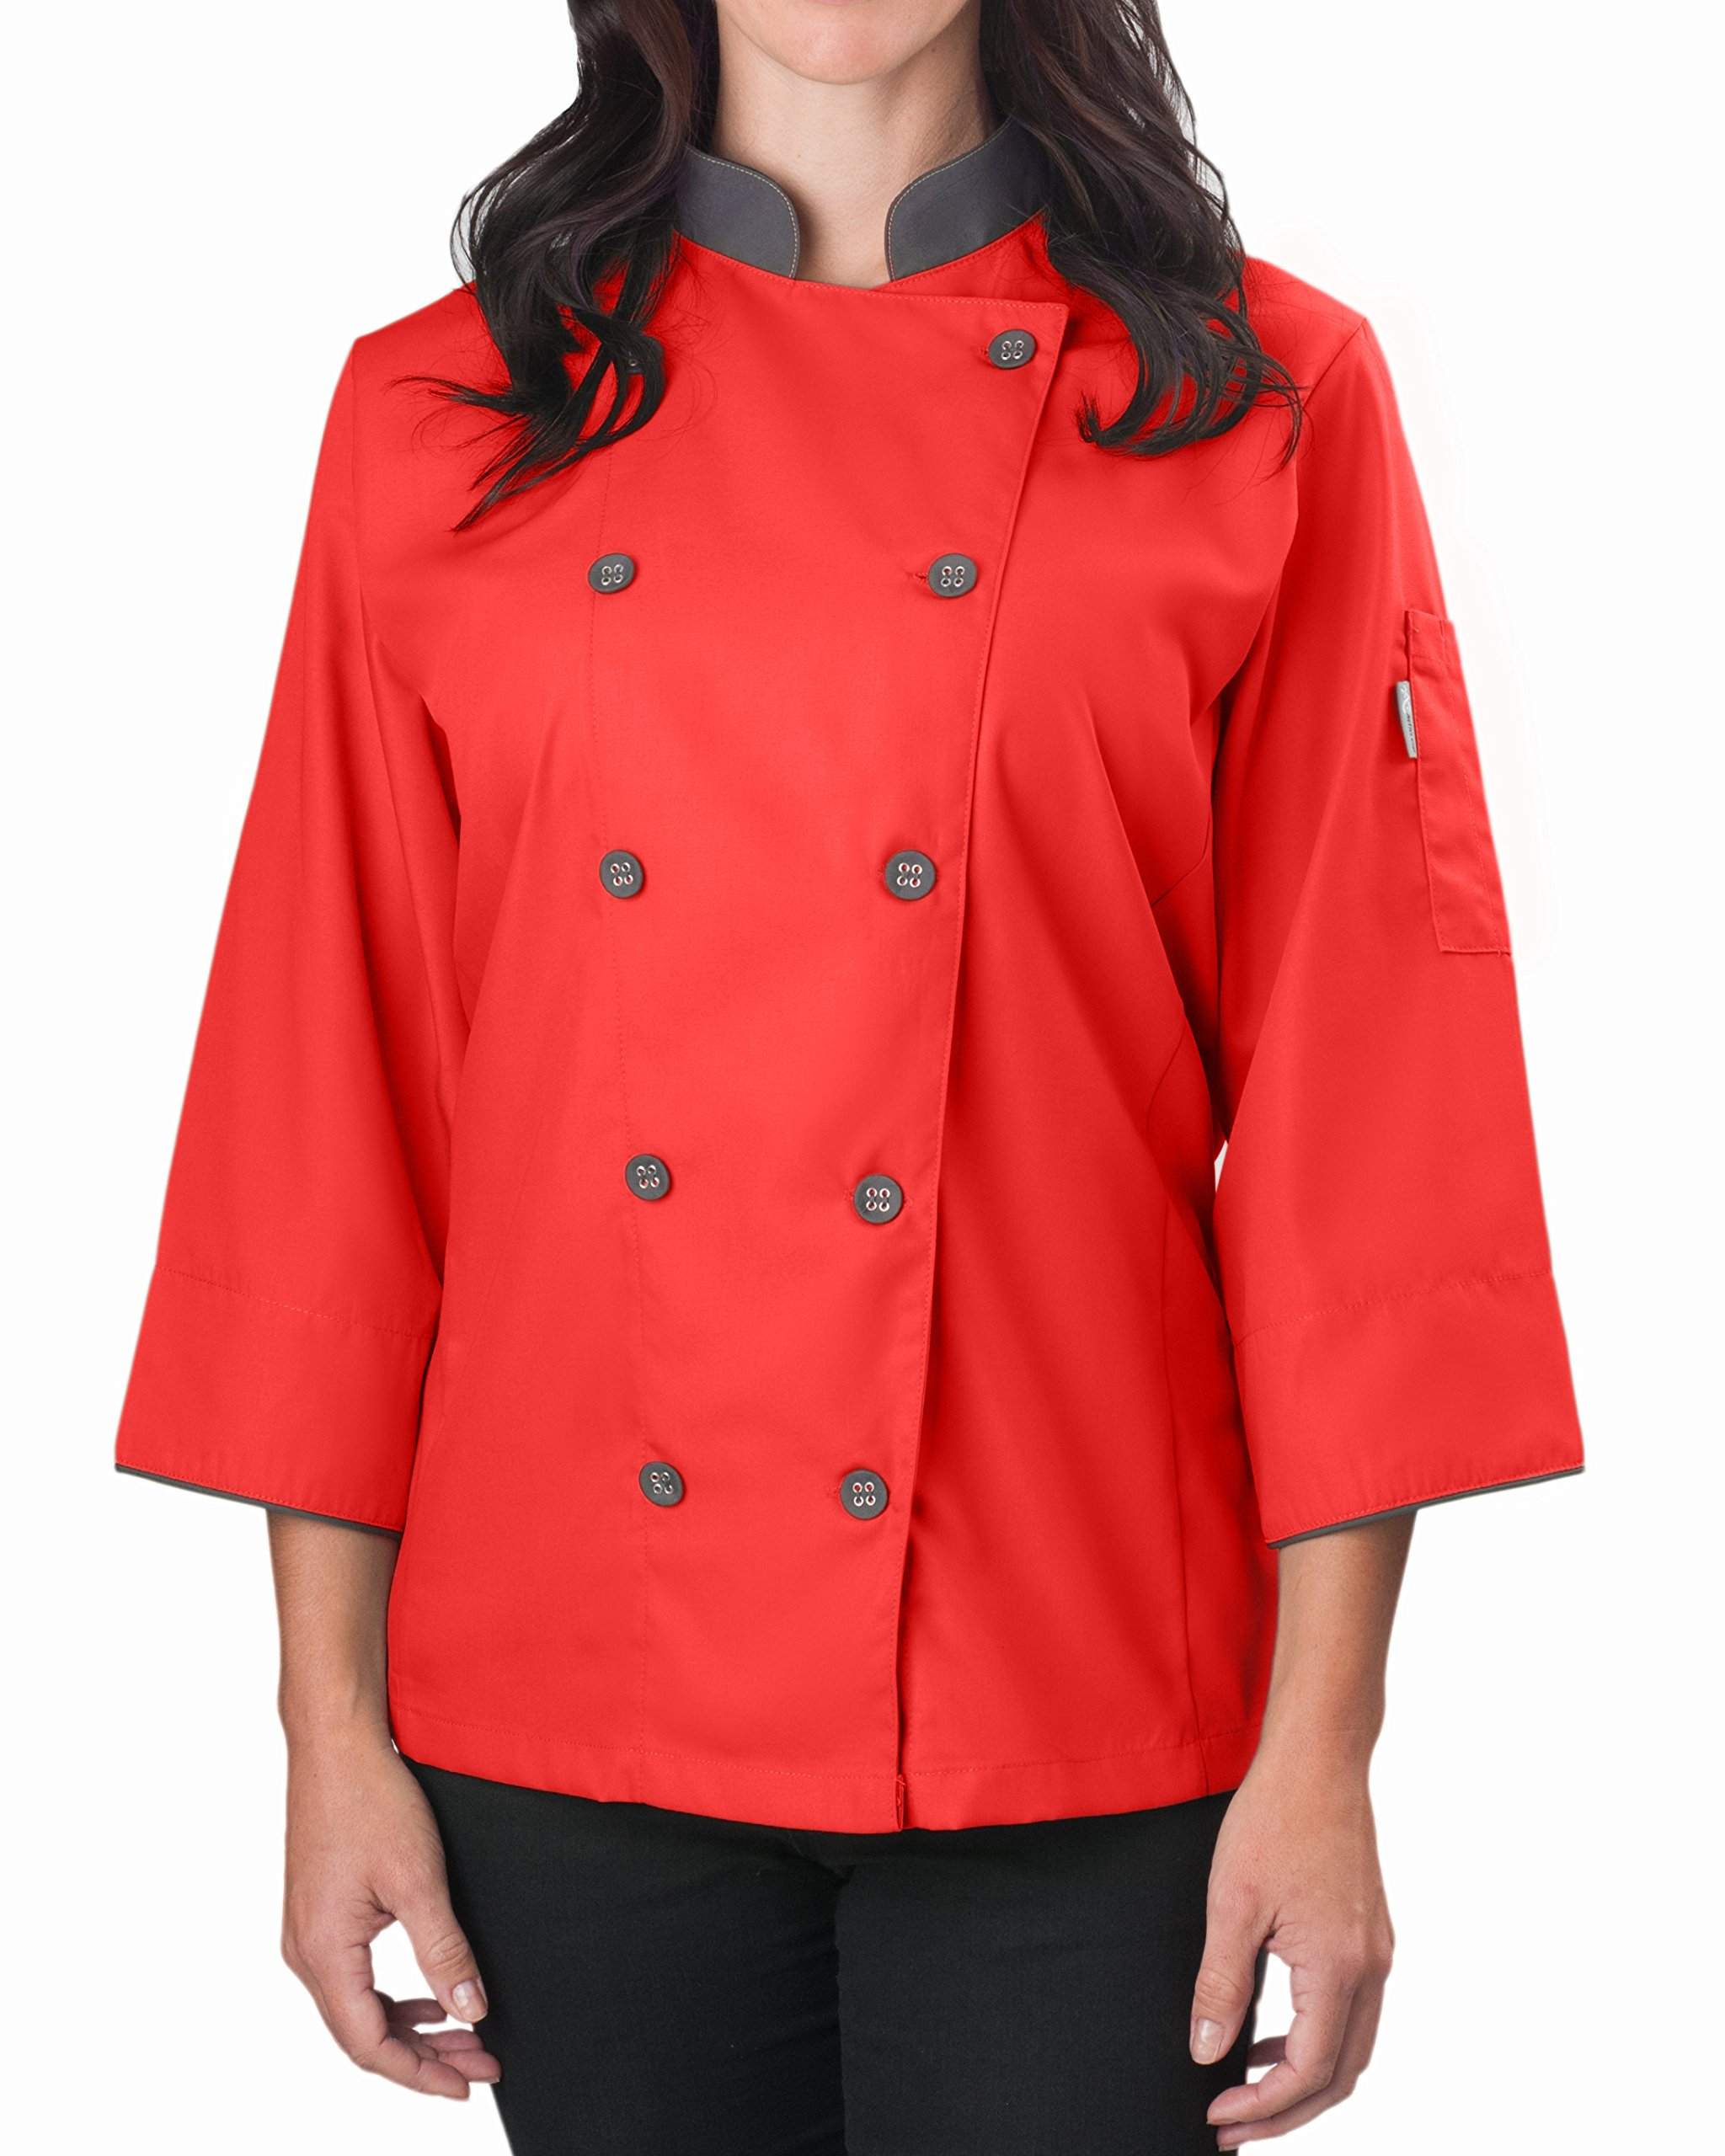 KNG Womens ¾ Sleeve Active Chef Coat, Red with Slate Accent, L